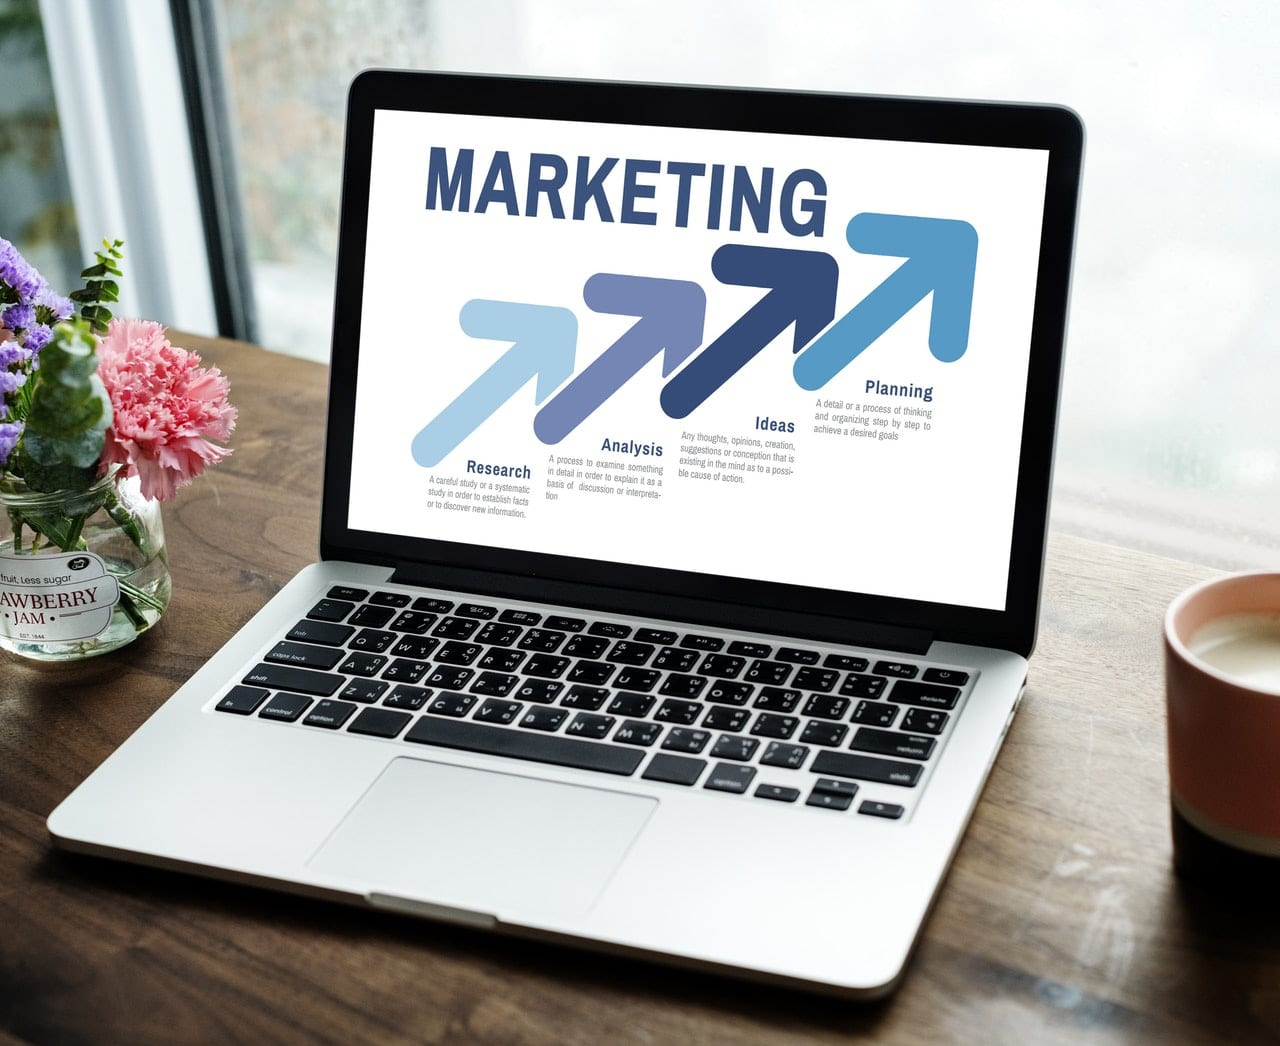 StrategyDriven Online Marketing and Website Development Article, 5 Powerful Ways to Generate More Business Leads